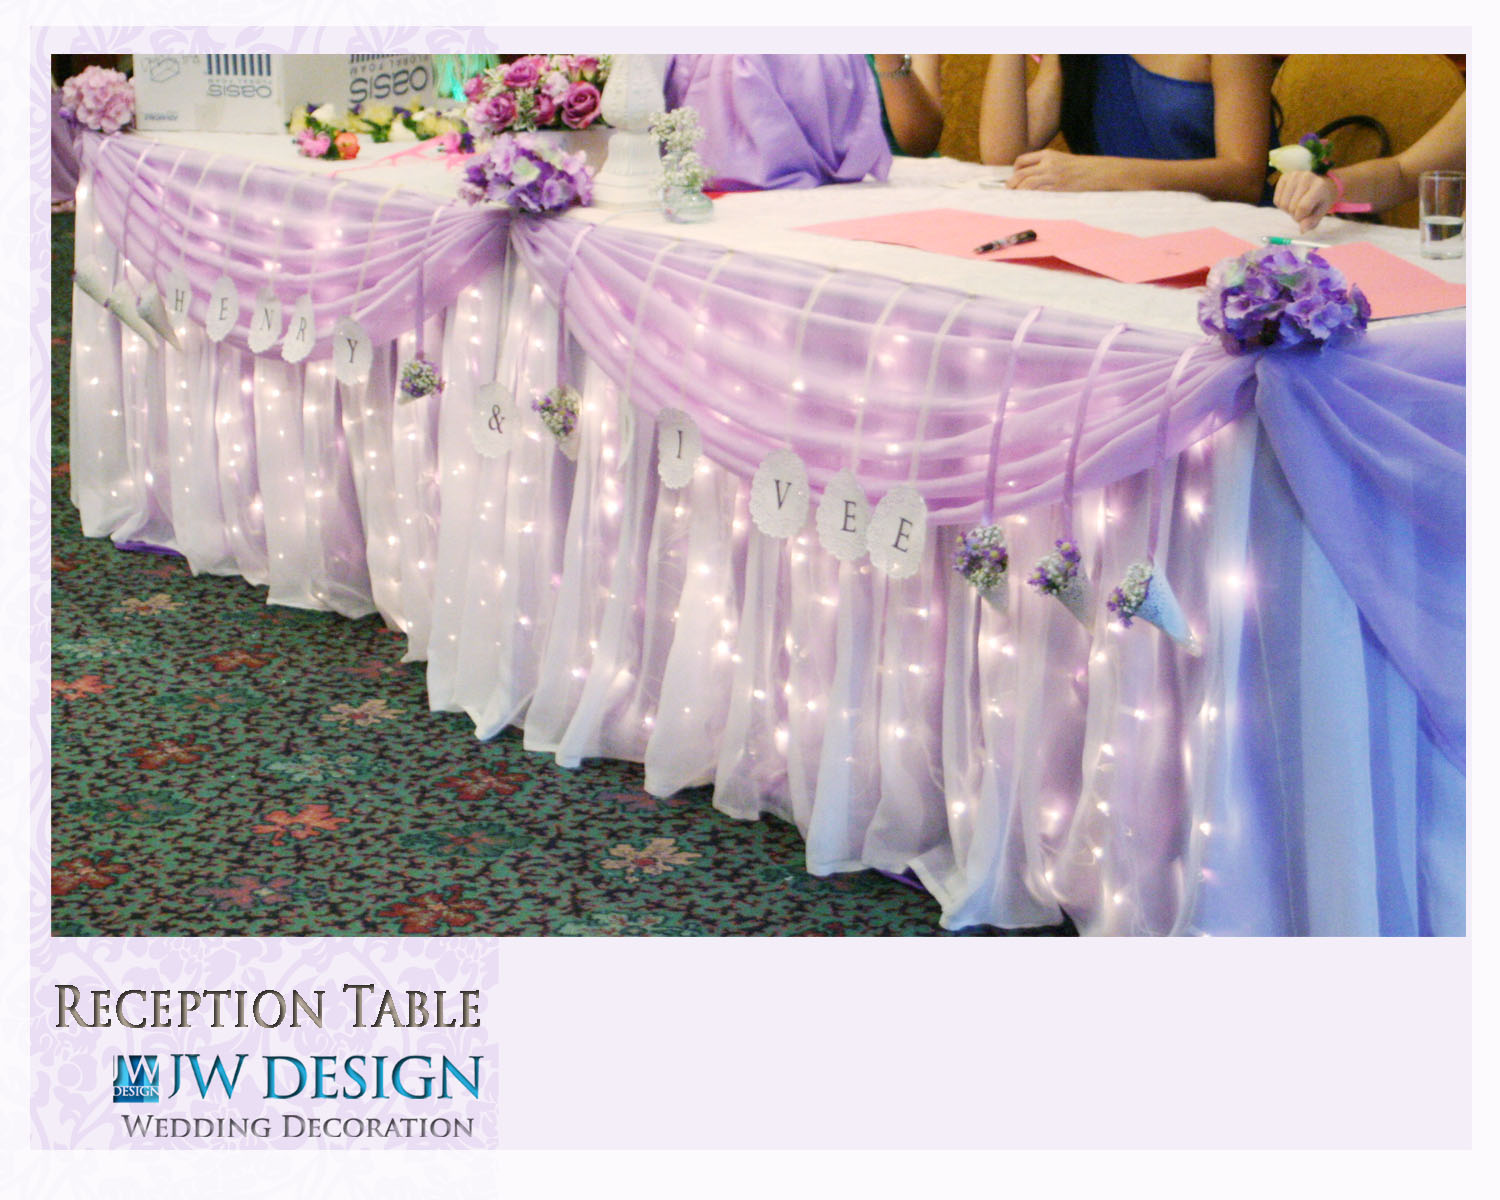 Wedding decoration klang image collections wedding dress wedding decoration klang images wedding dress decoration and wedding decoration klang images wedding dress decoration and junglespirit Gallery